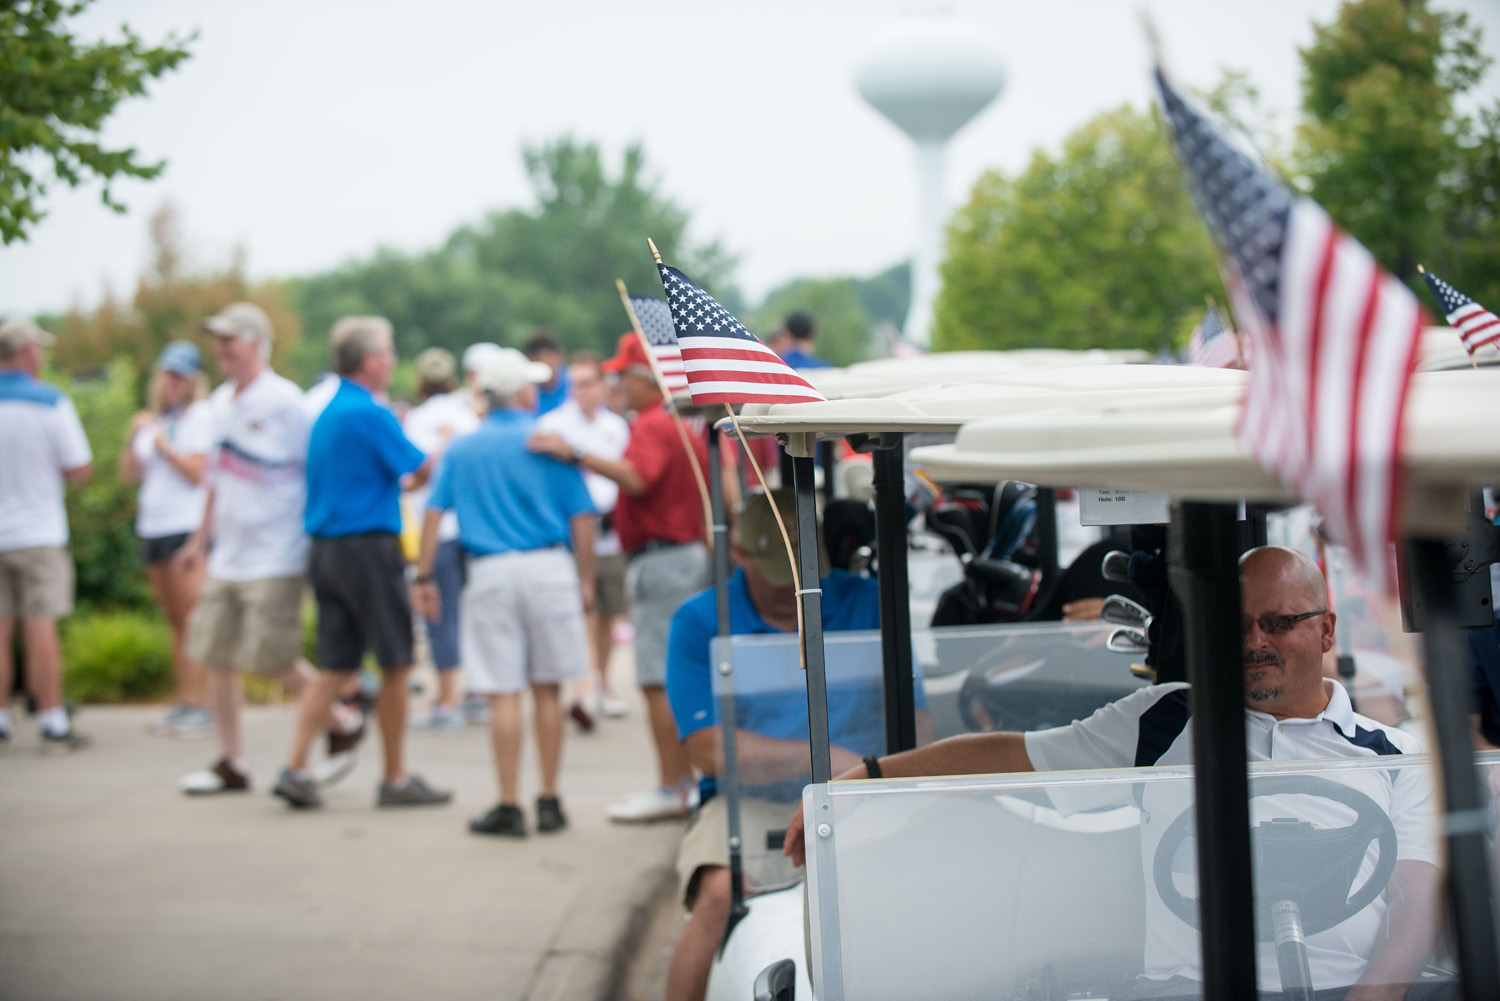 American flags adorn golf carts as the Eagle Heroes Golf Tournament gets underway at Crystal Lake Golf Club in Lakeville, MN. Photo by Lakeville Golf Tournament photographer Anthologie.